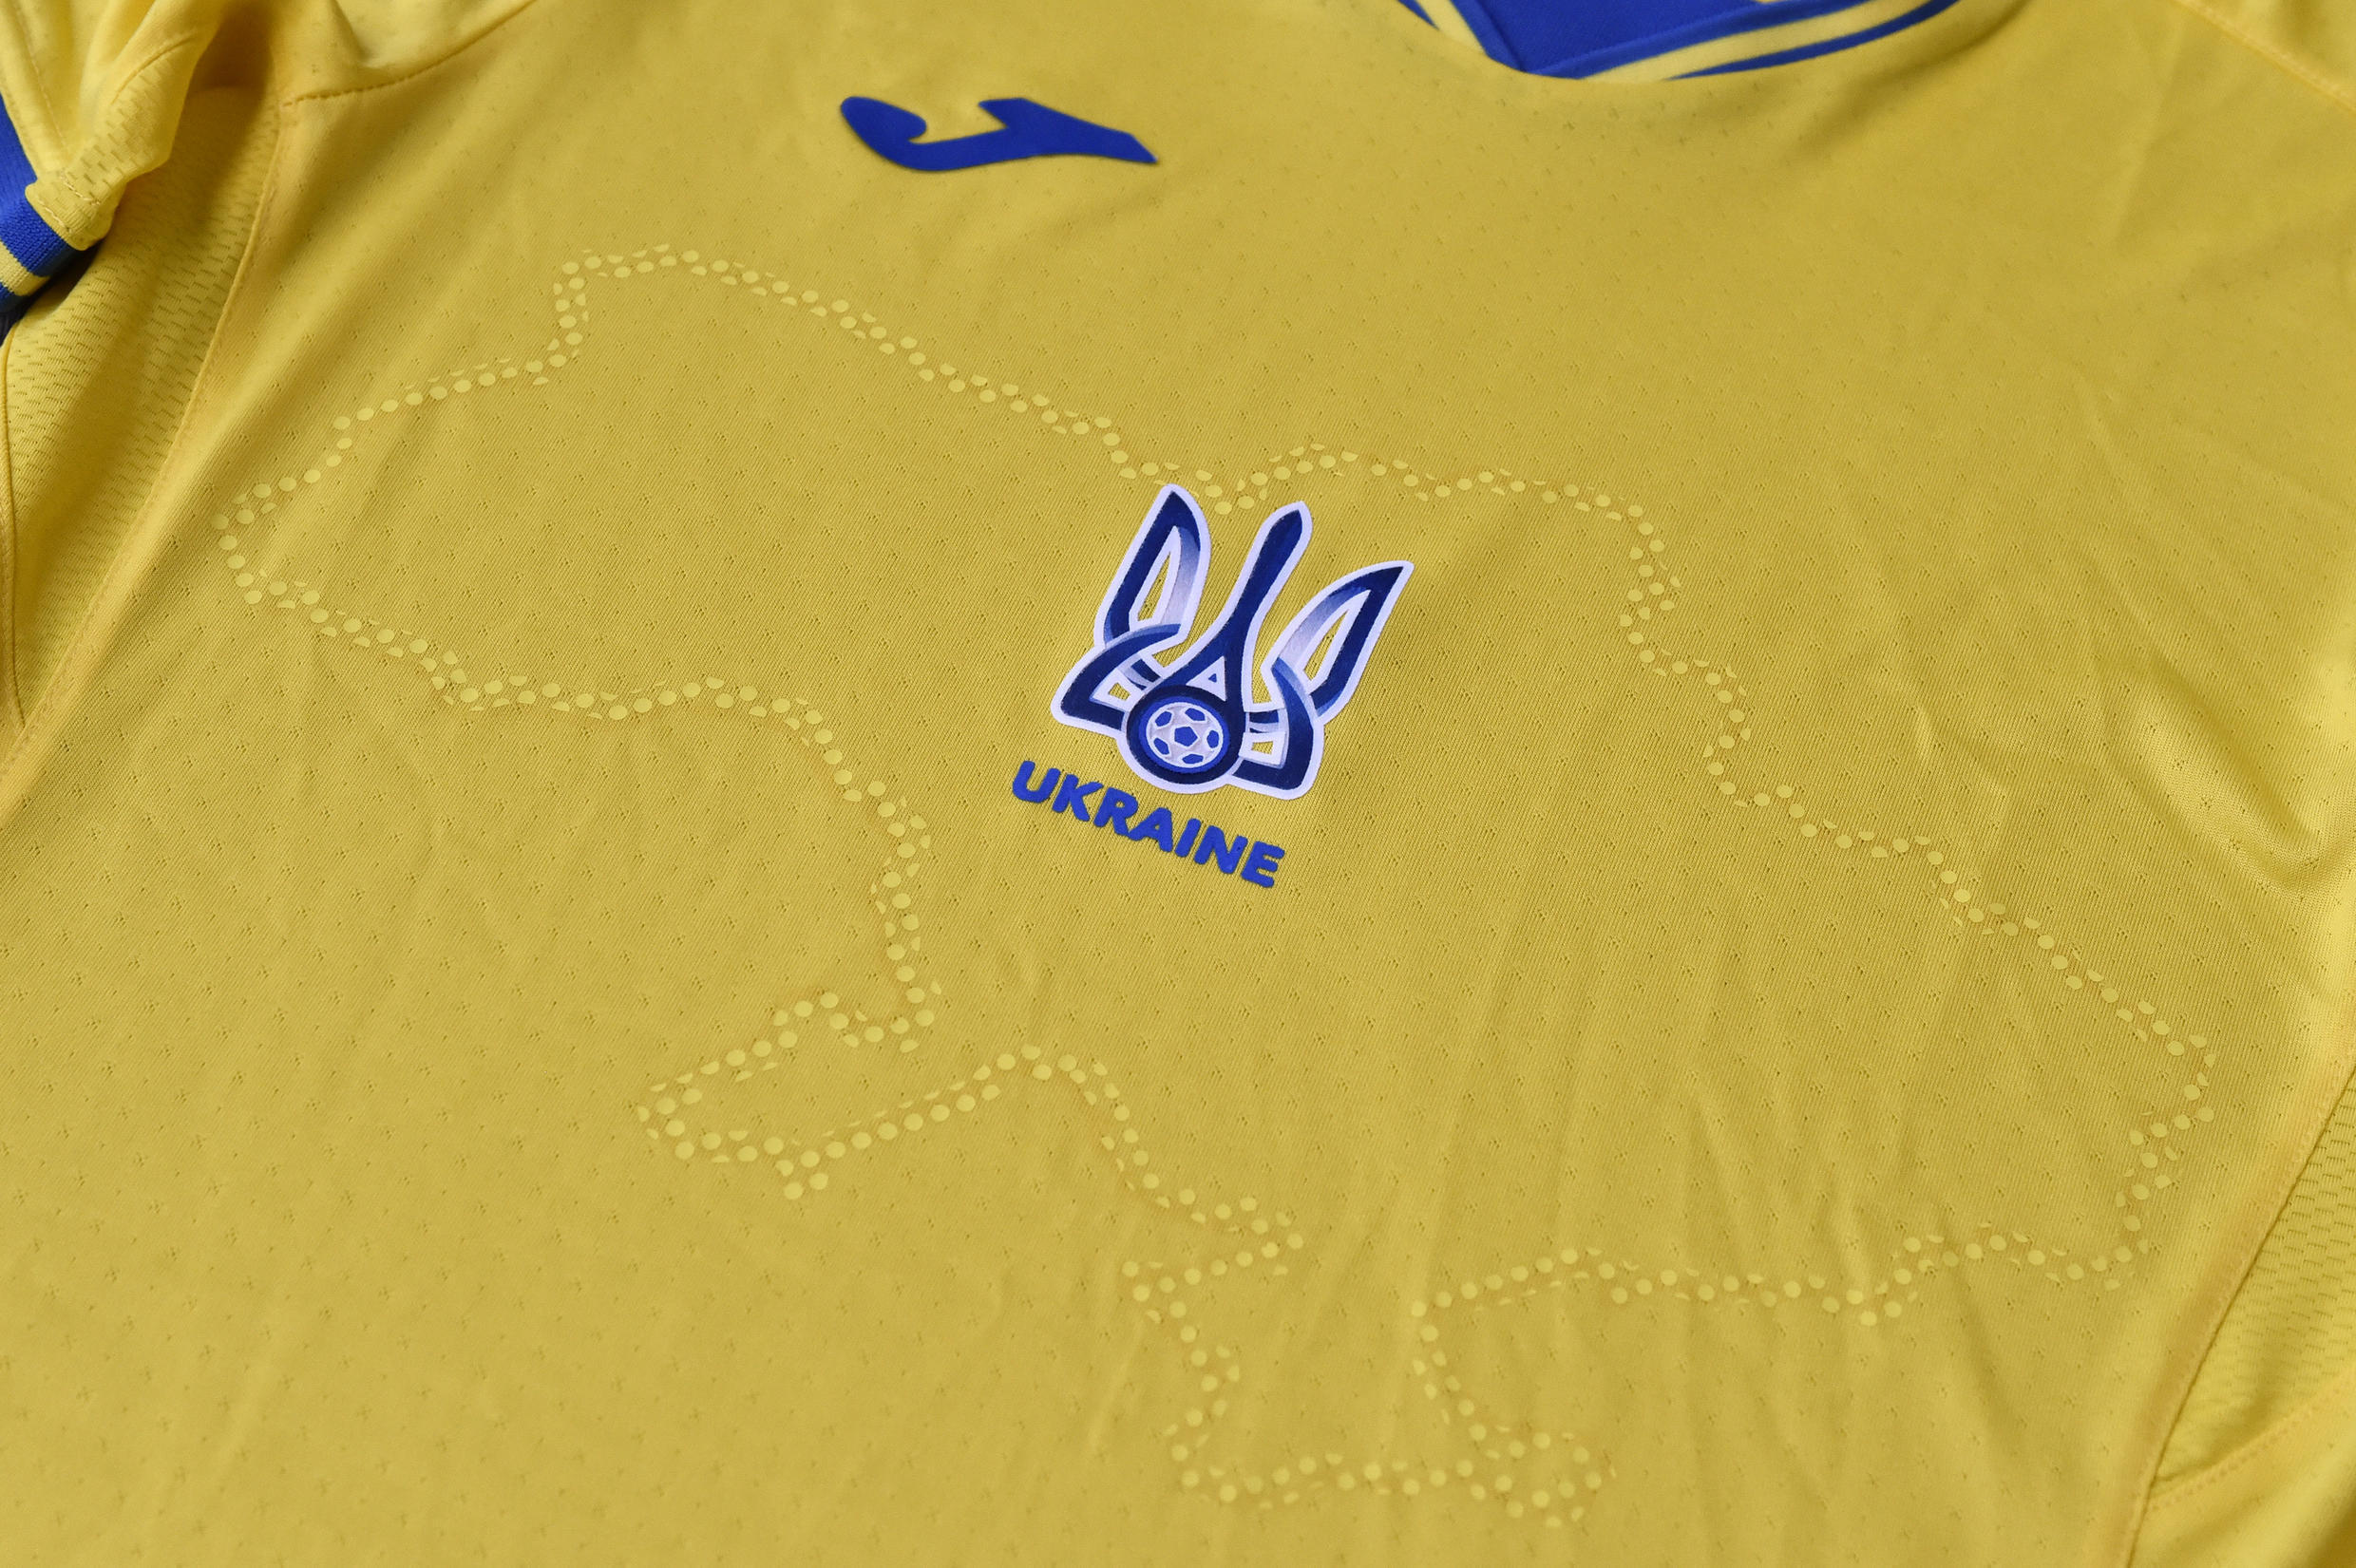 Ukraine's Euro 2020 jersey, which featured nationalist slogans and the outline of Ukraine including Crimea, sparked fury in Russia